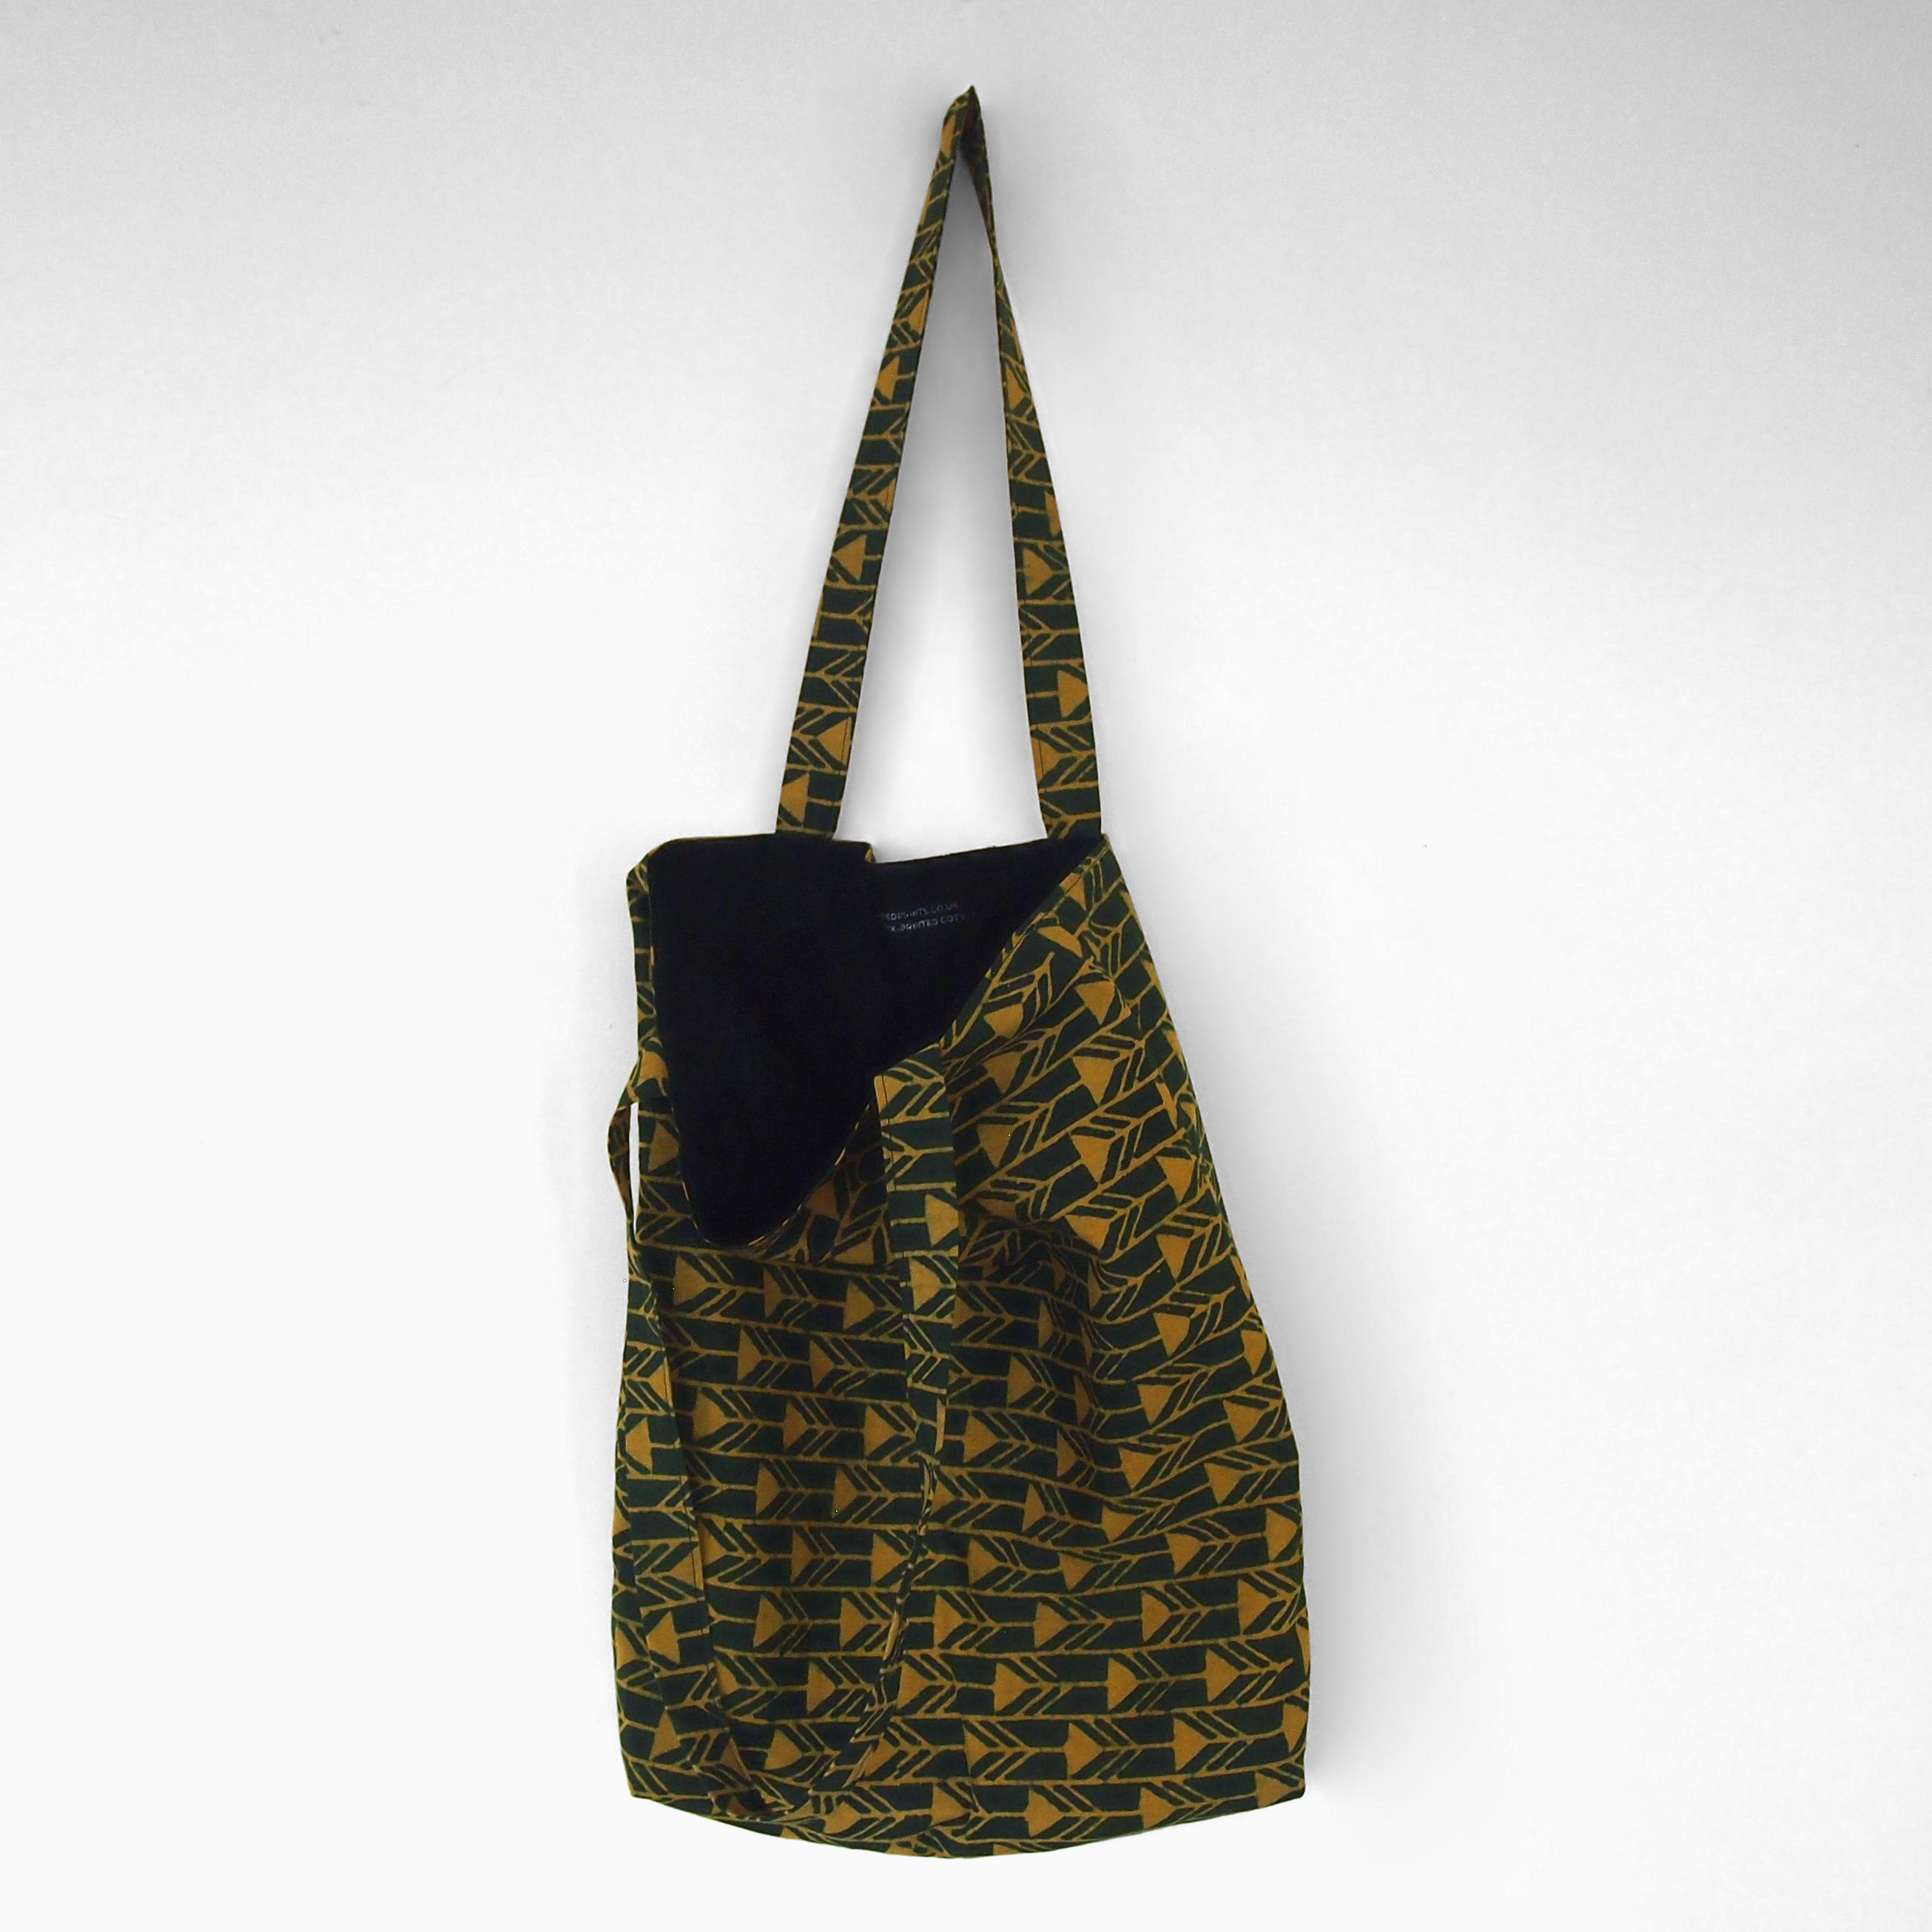 block printed cotton tote bag, green, yellow arrow design, natural dye, lined with black cotton, open